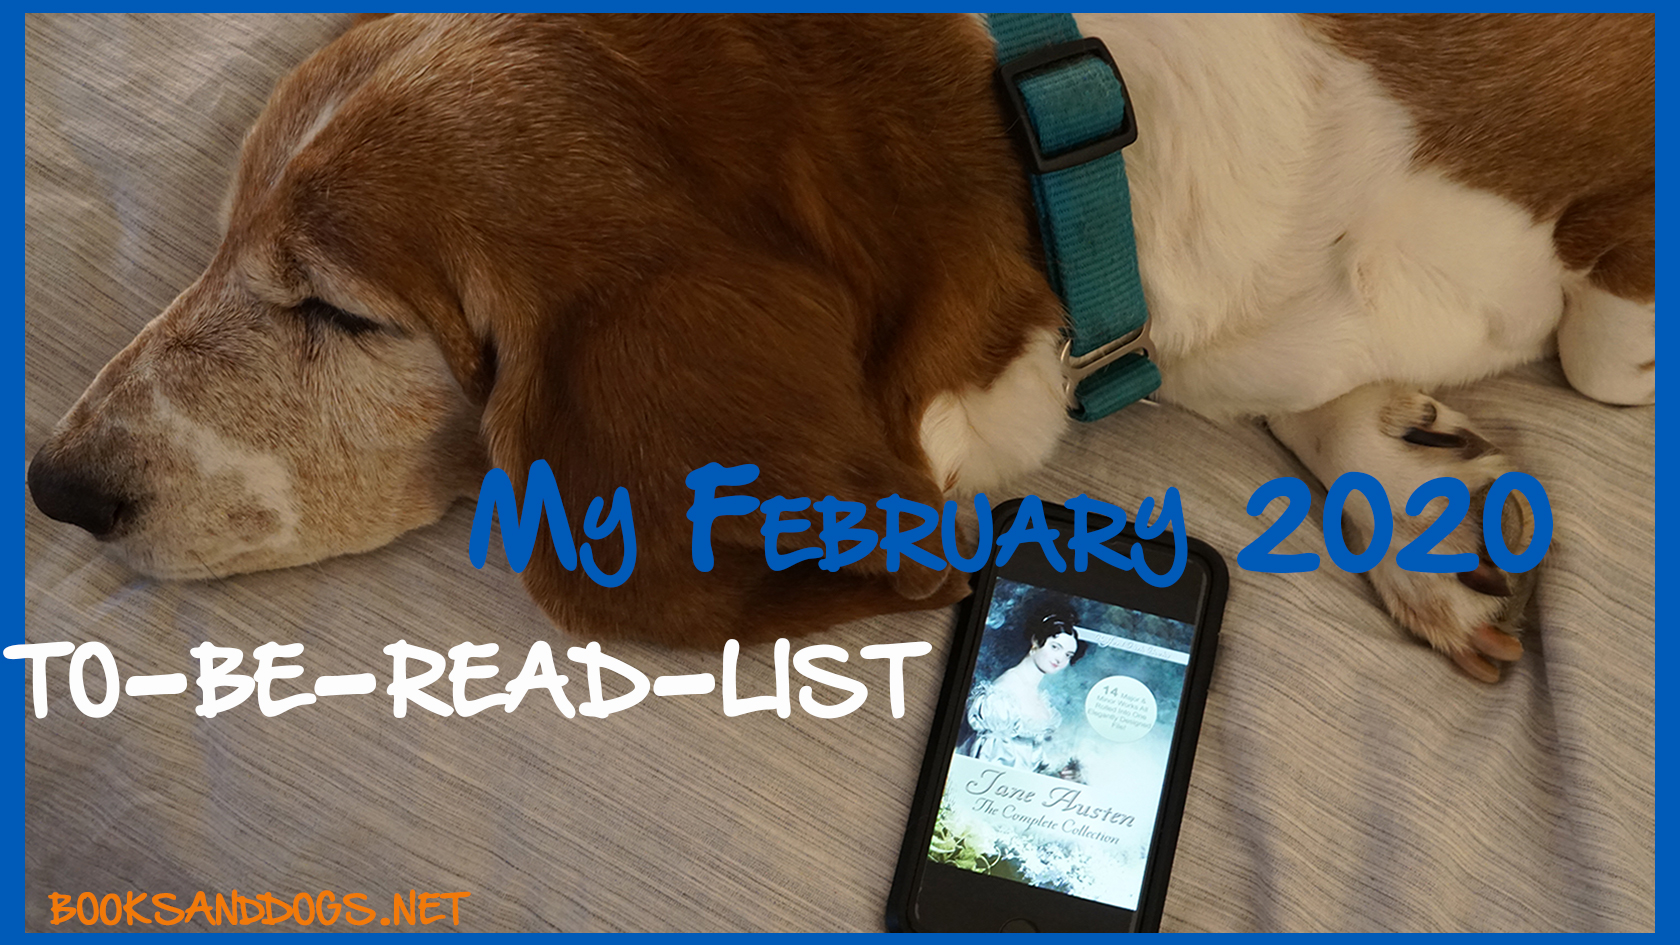 Blog title: My February 2020 To Be Read List